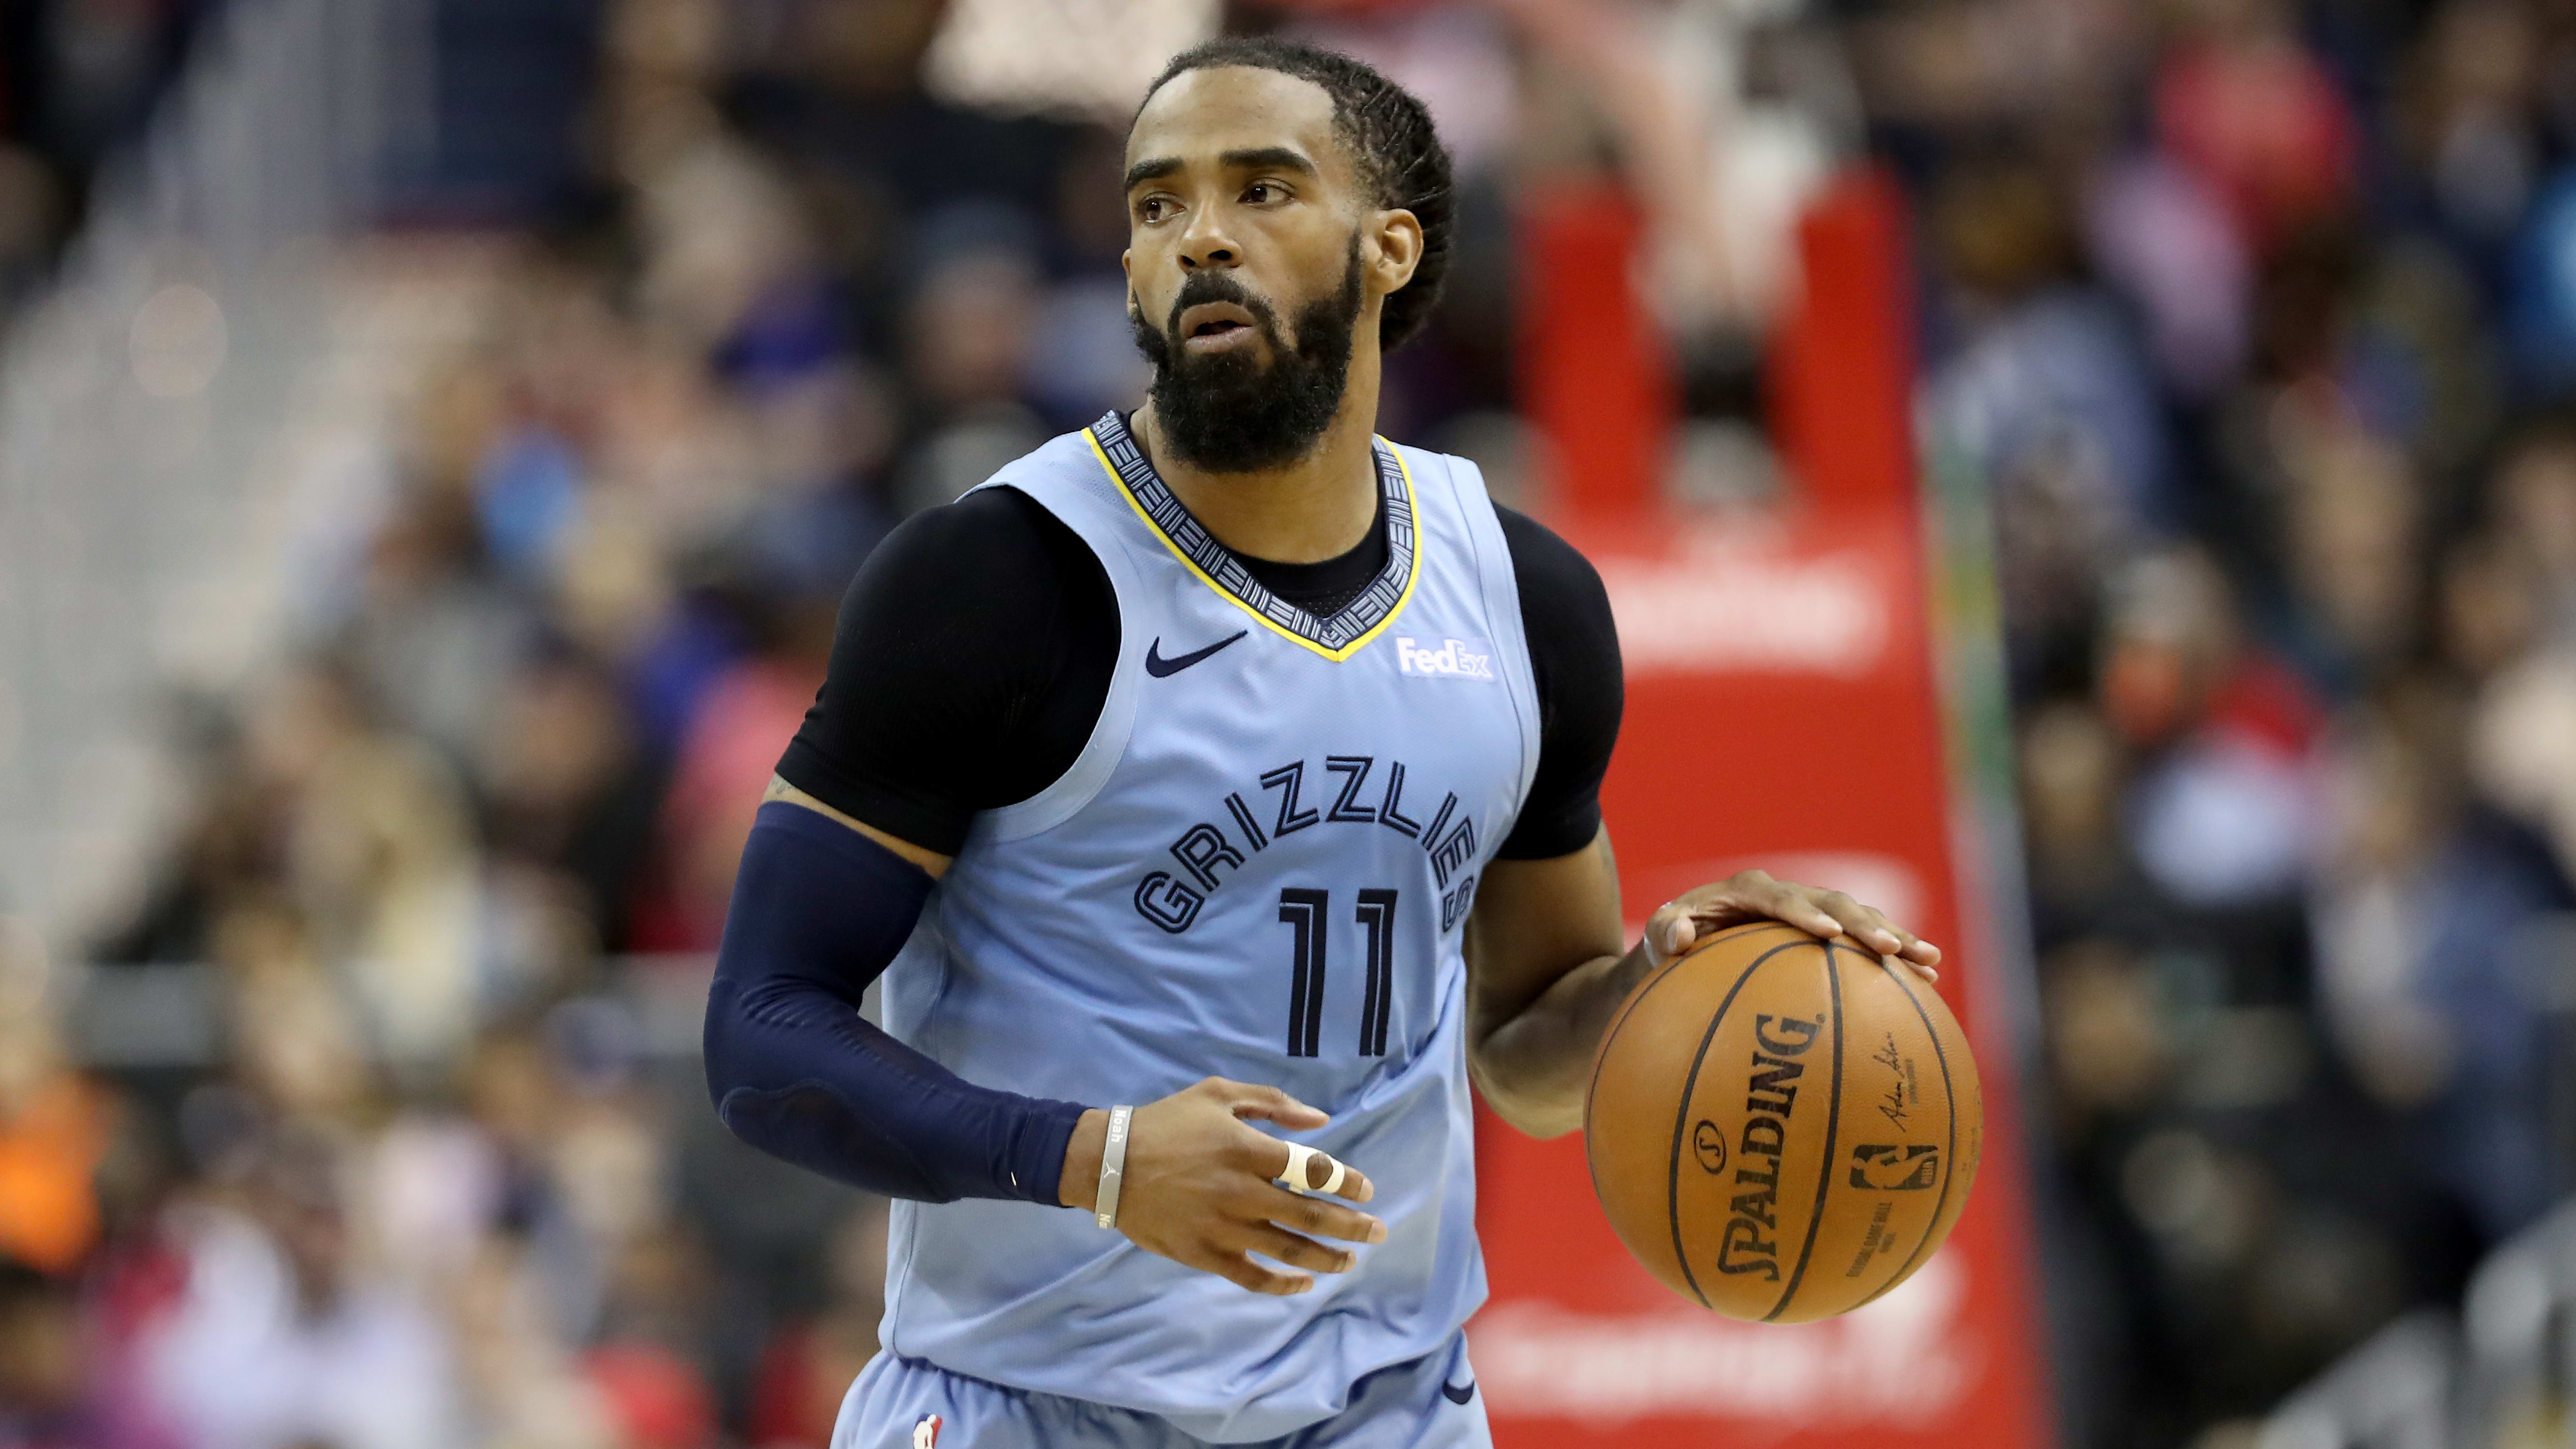 WASHINGTON, DC - MARCH 16: Mike Conley #11 of the Memphis Grizzlies dribbles the ball against the Washington Wizards in the second half  at Capital One Arena on March 16, 2019 in Washington, DC. NOTE TO USER: User expressly acknowledges and agrees that, by downloading and or using this photograph, User is consenting to the terms and conditions of the Getty Images License Agreement. (Photo by Rob Carr/Getty Images)